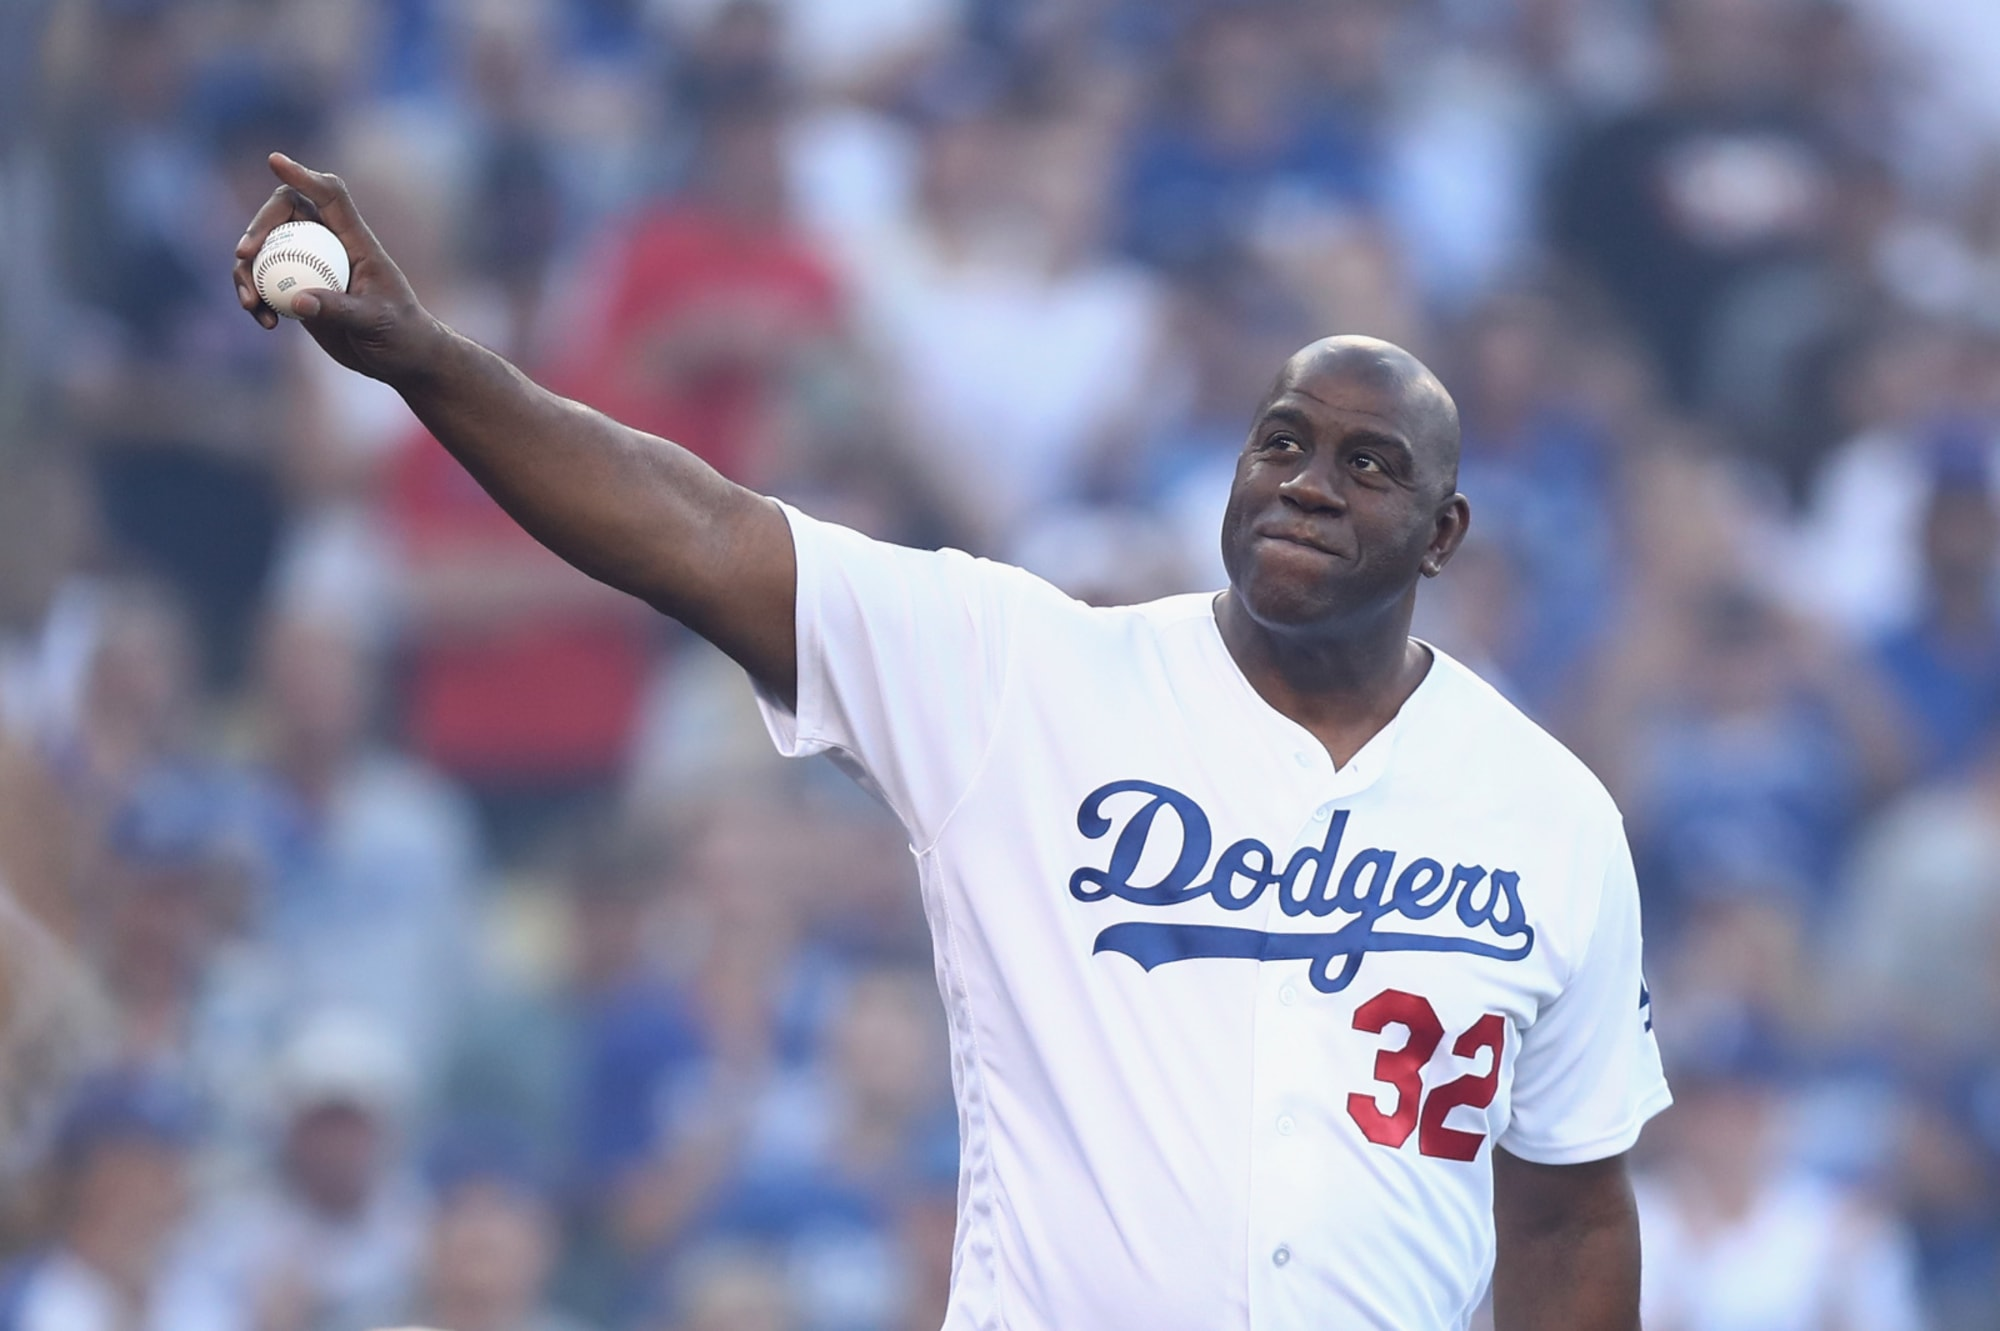 Magic Johnson buys Dodgers on this date in 2012